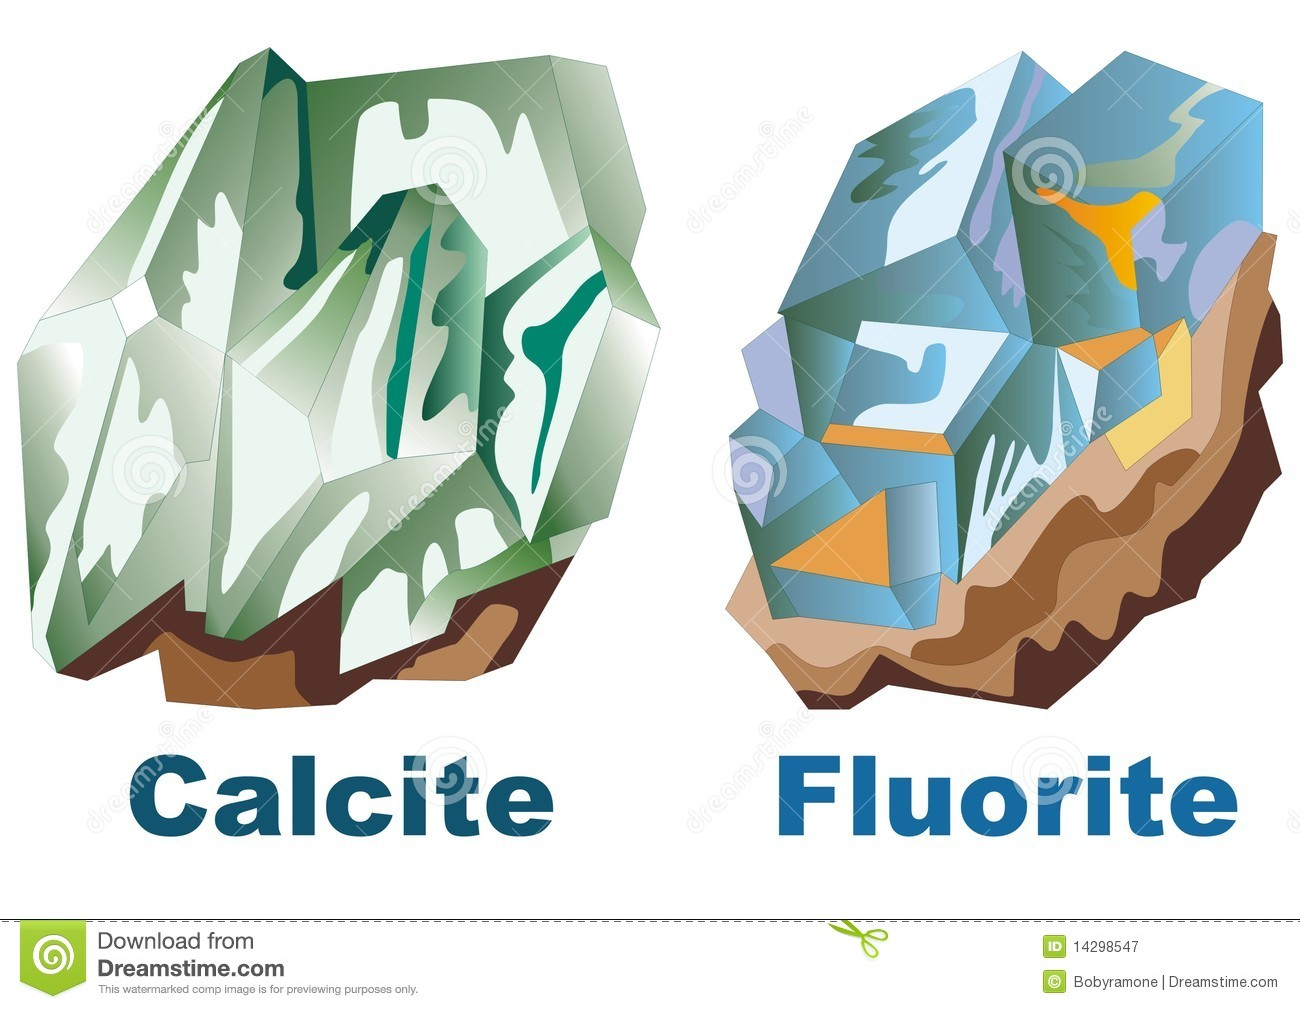 Fluorite clipart #20, Download drawings